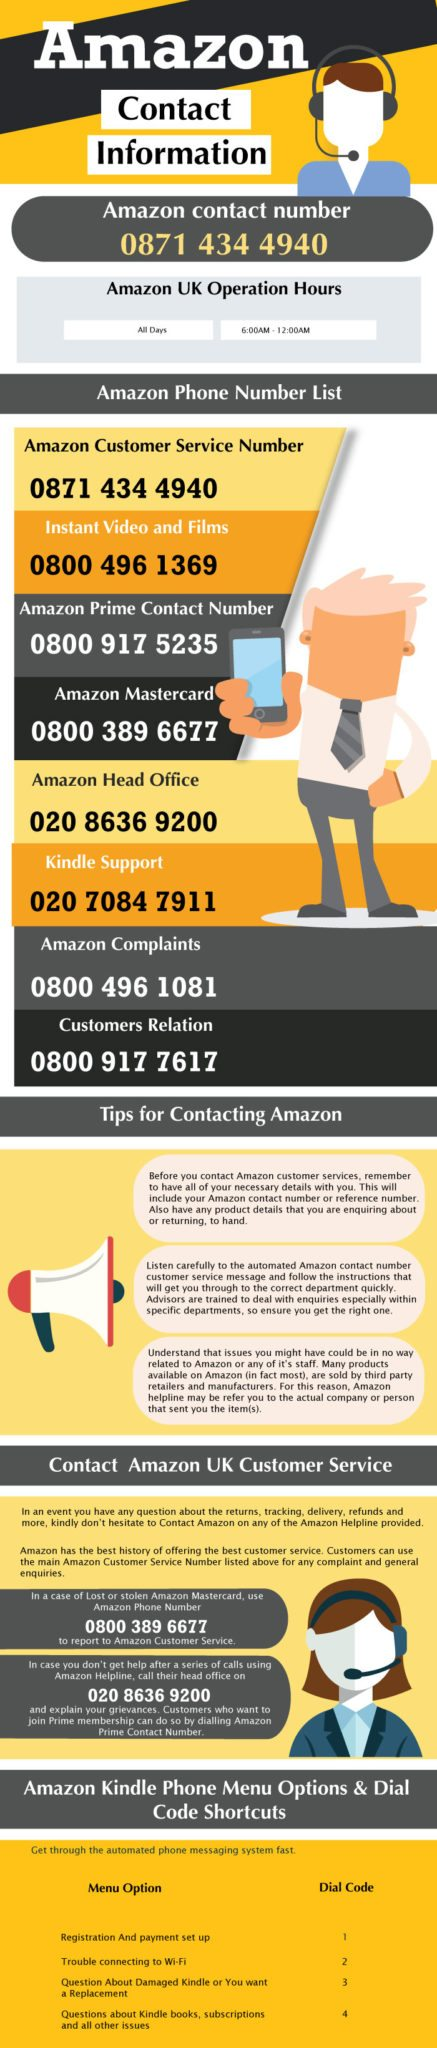 Amazon UK phone number